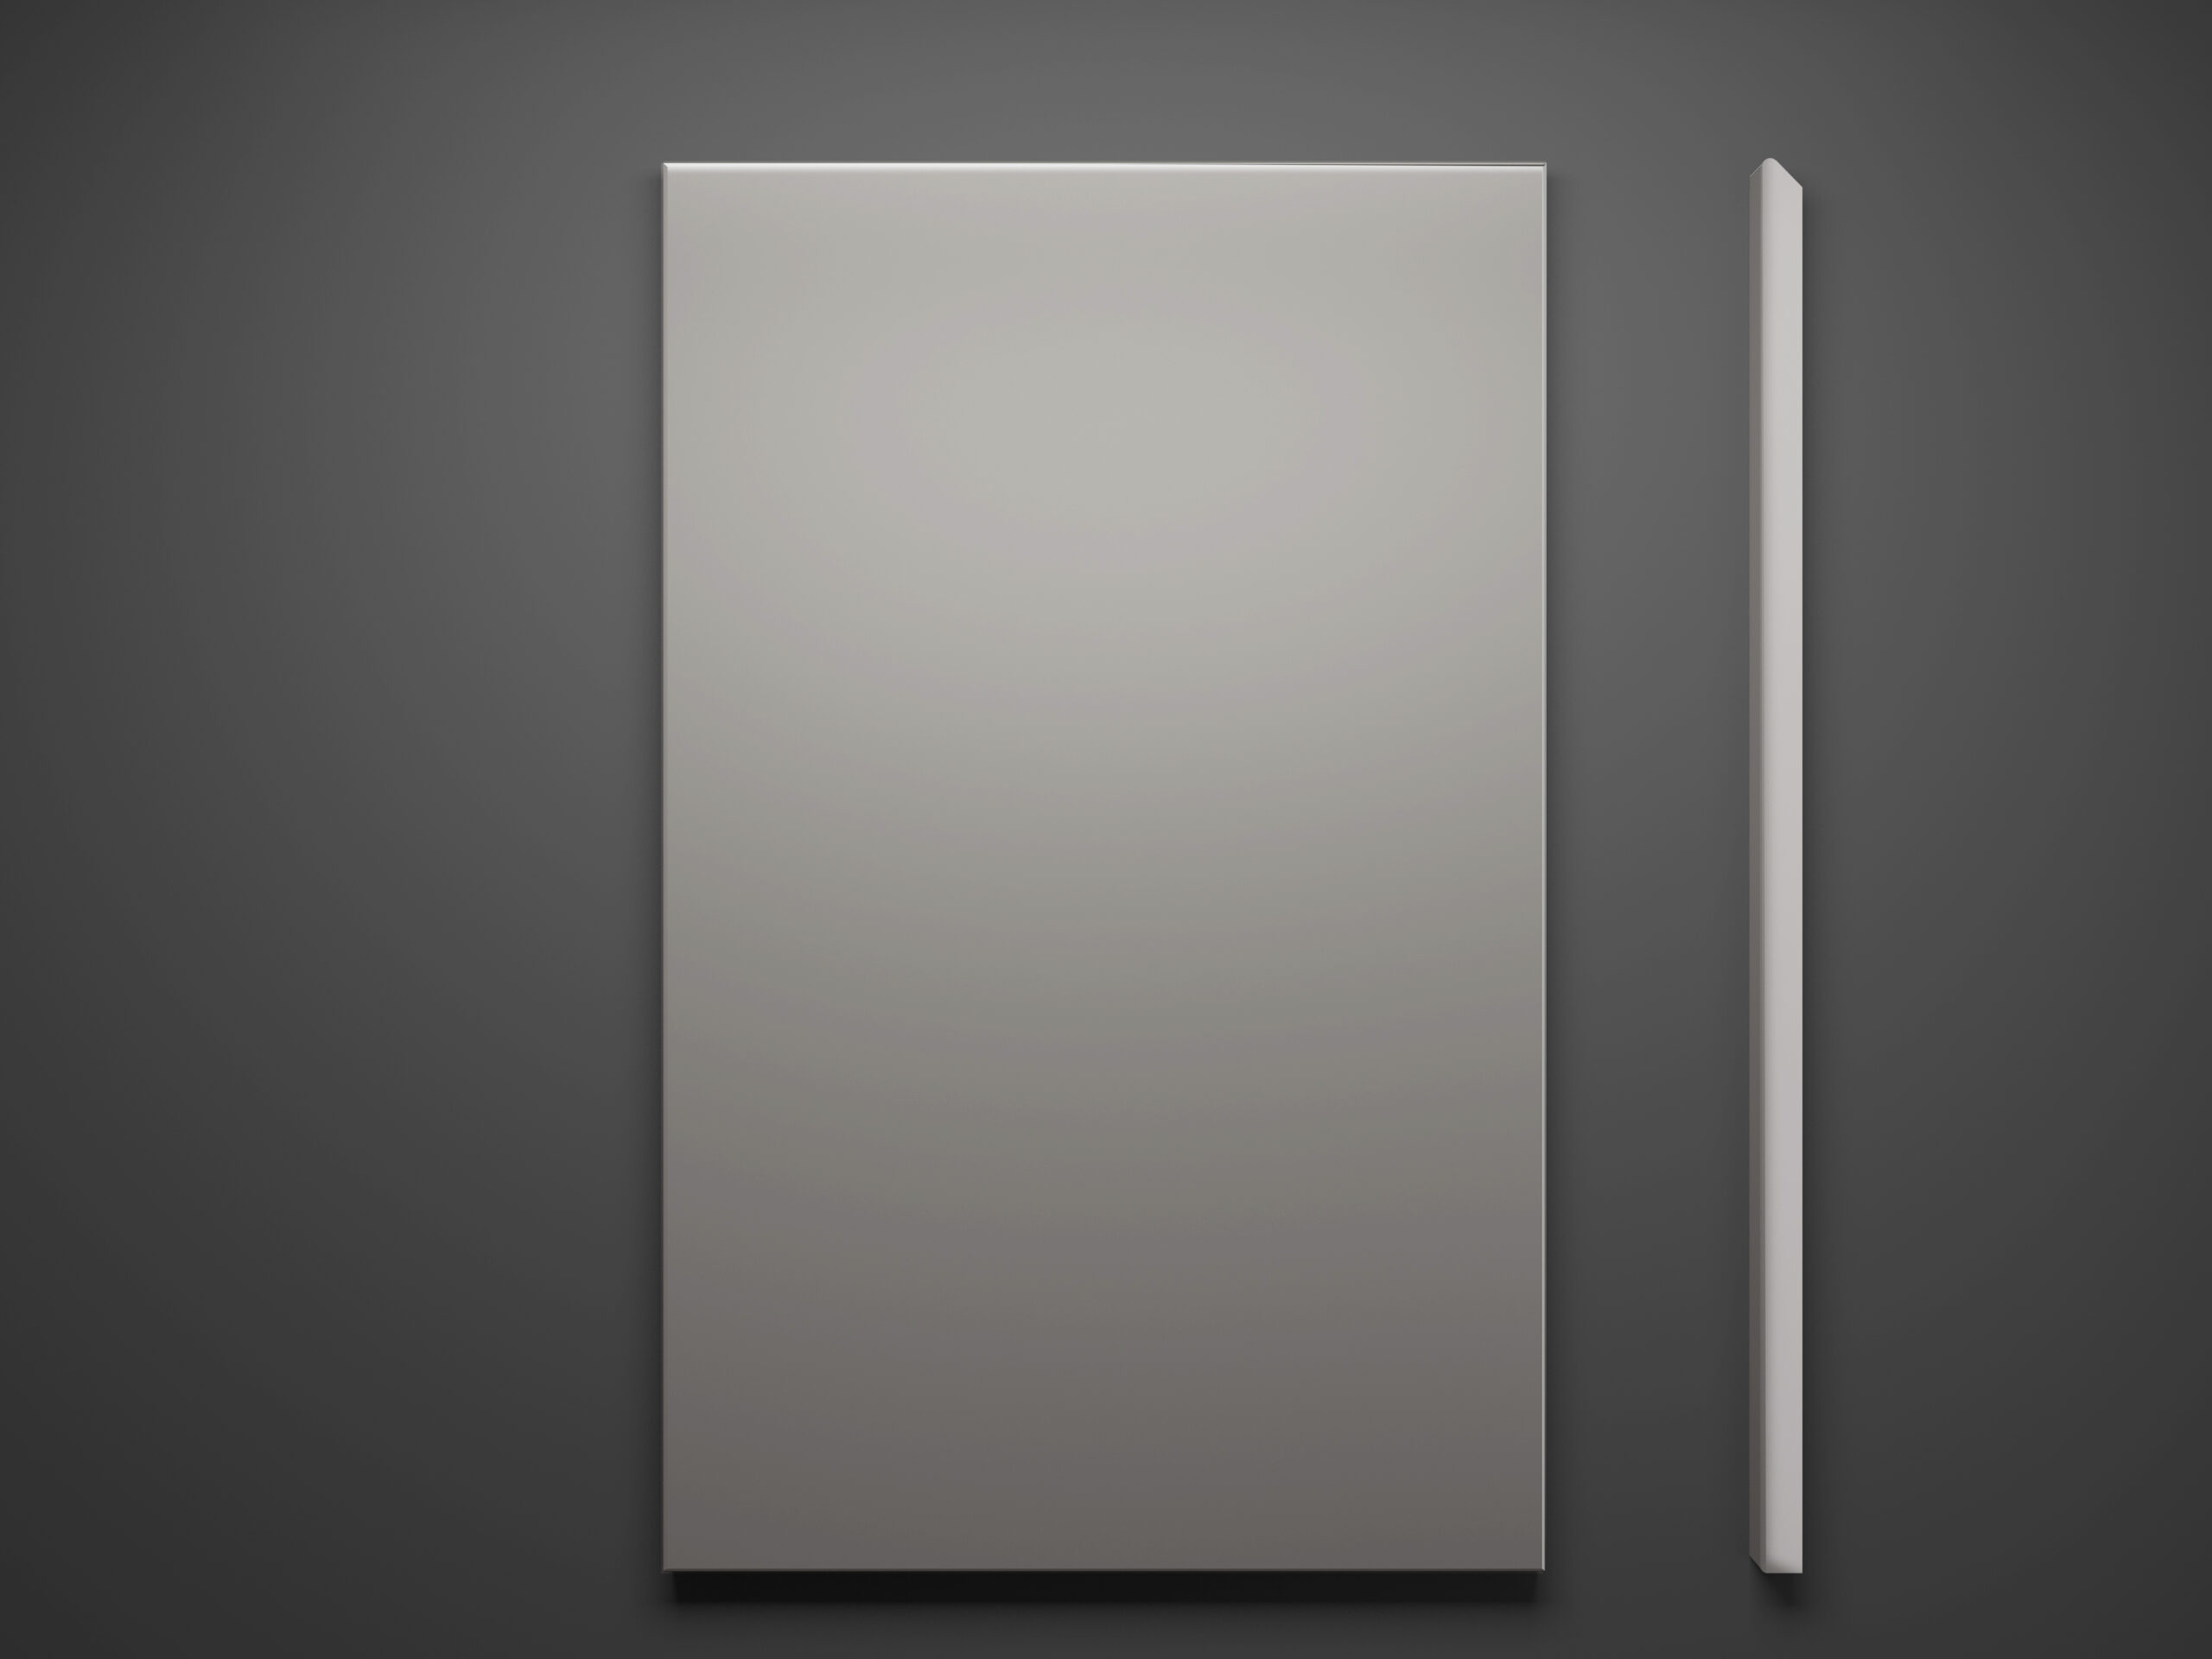 C2s Sample Door on Grey Background